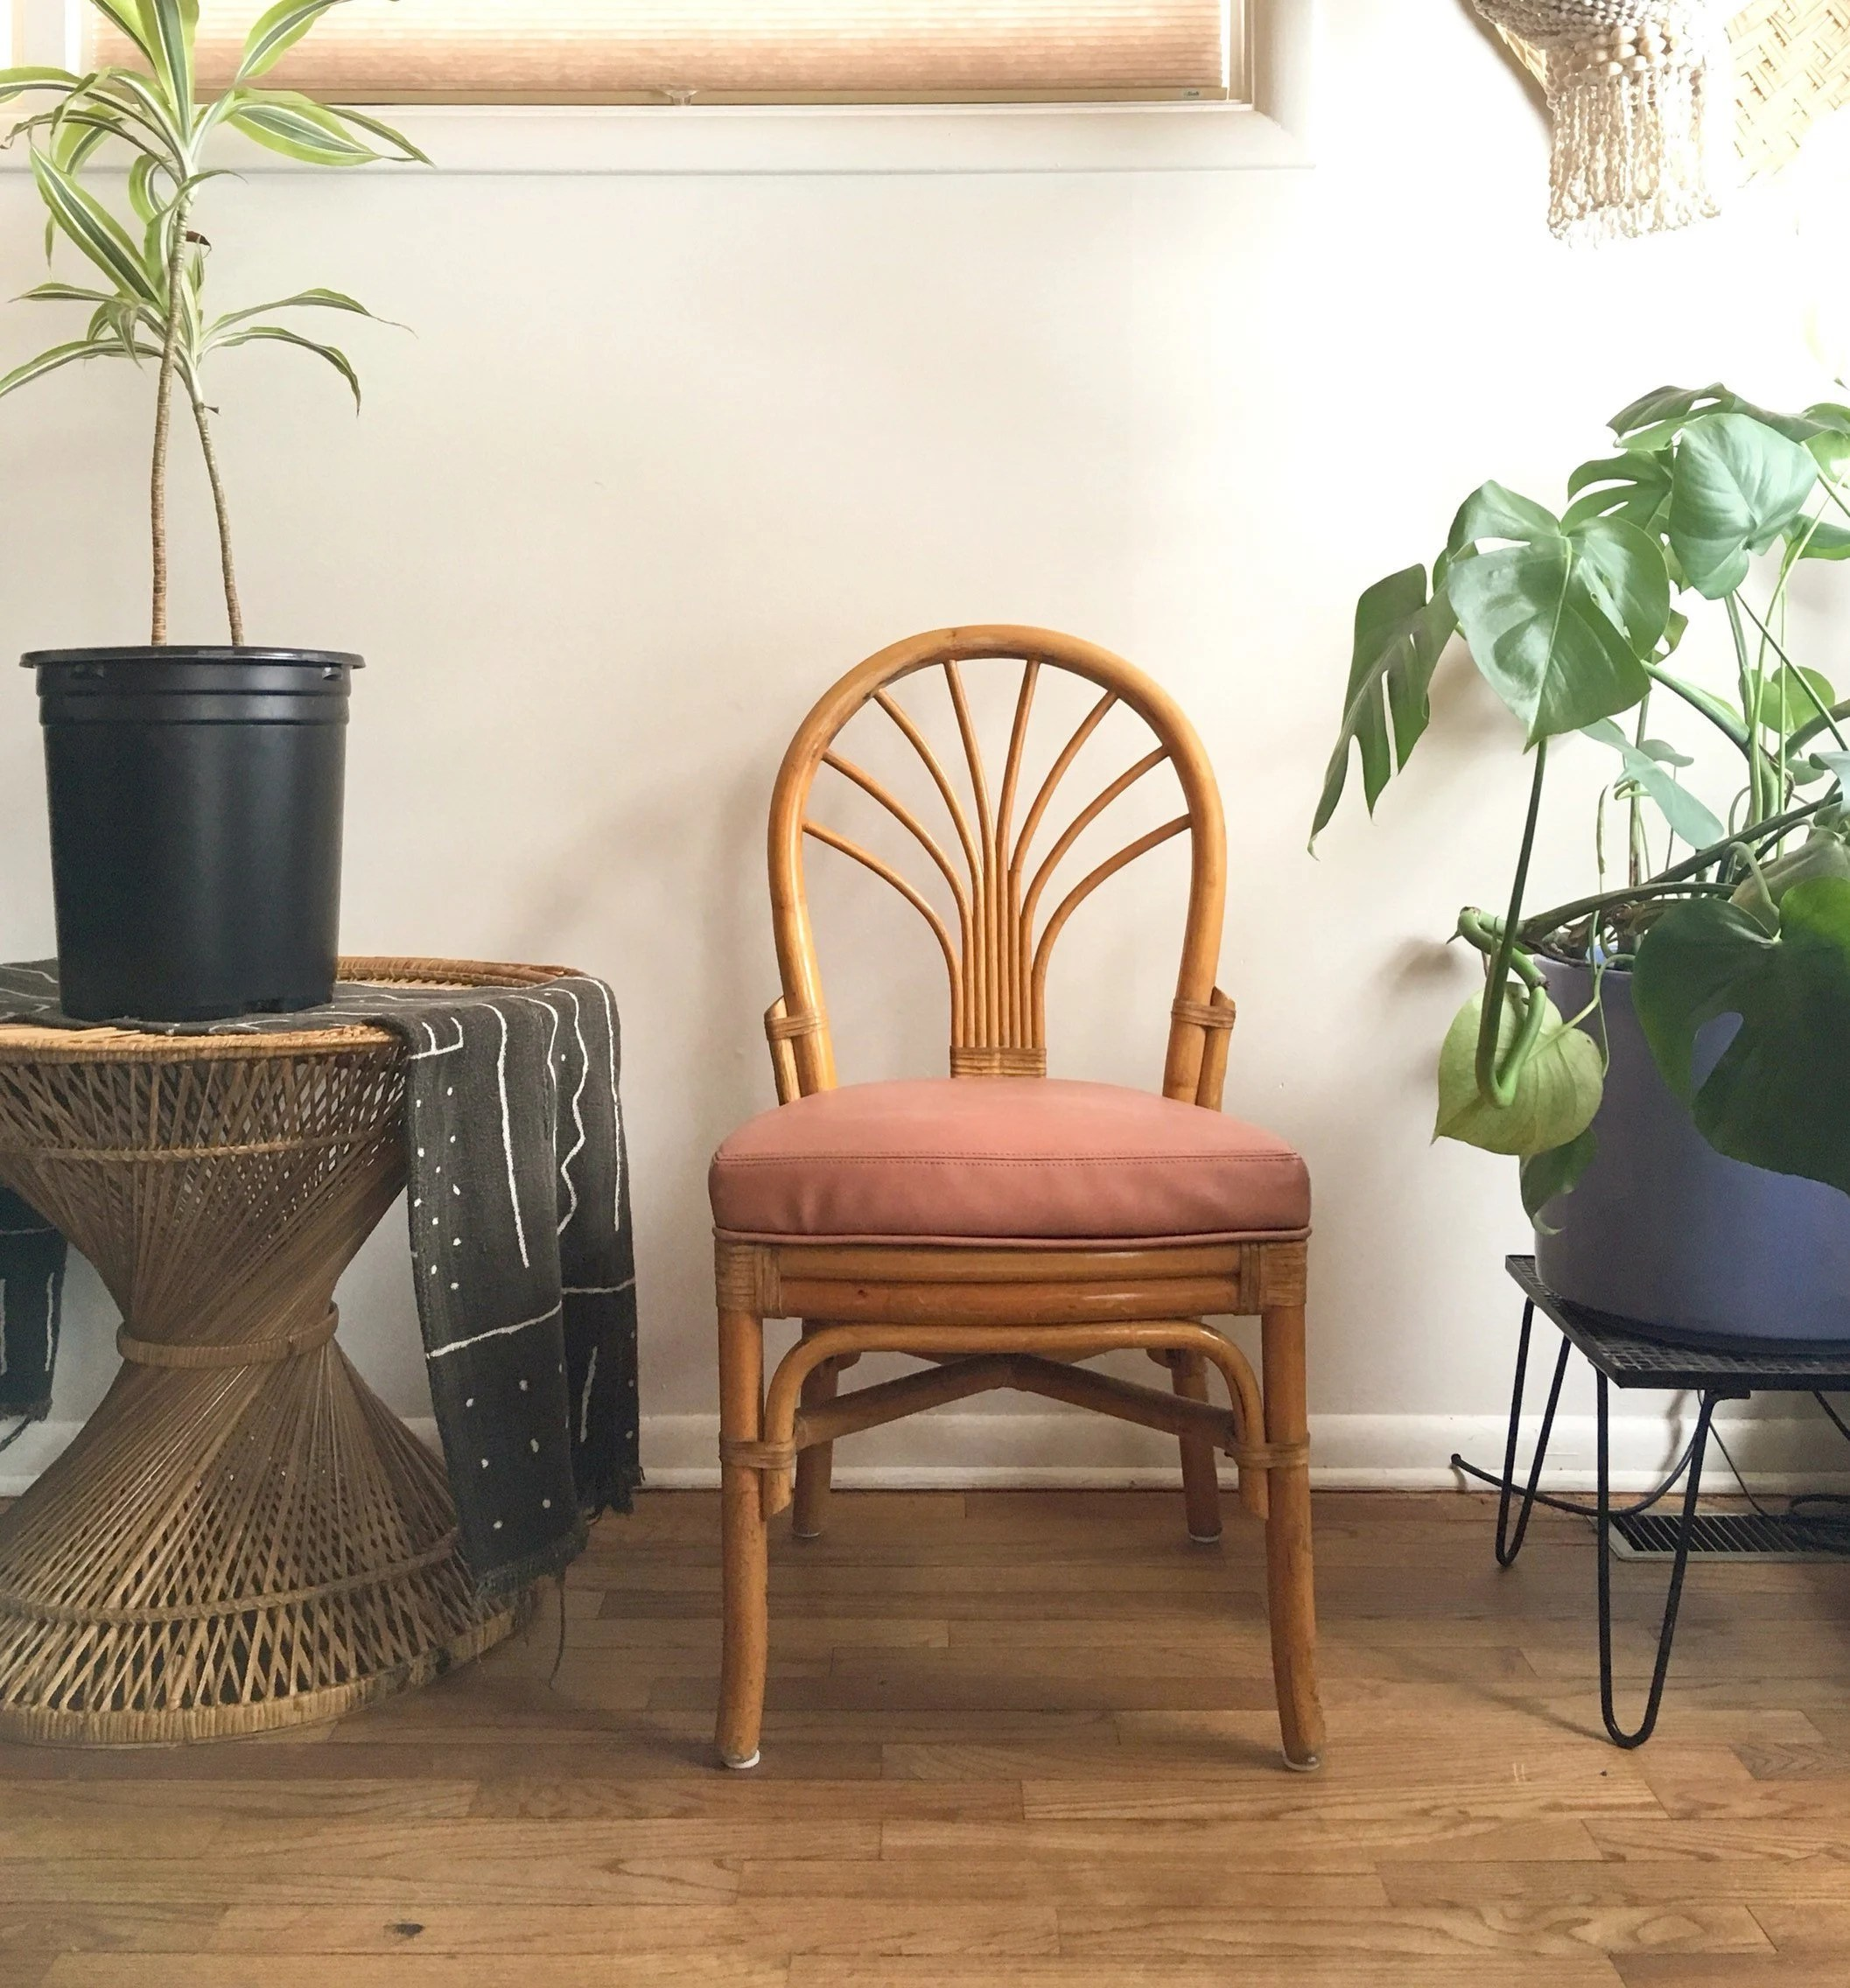 bentwood dining chair human touch chairs vintage rattan with mauve vinyl seat 7 etsy image 0